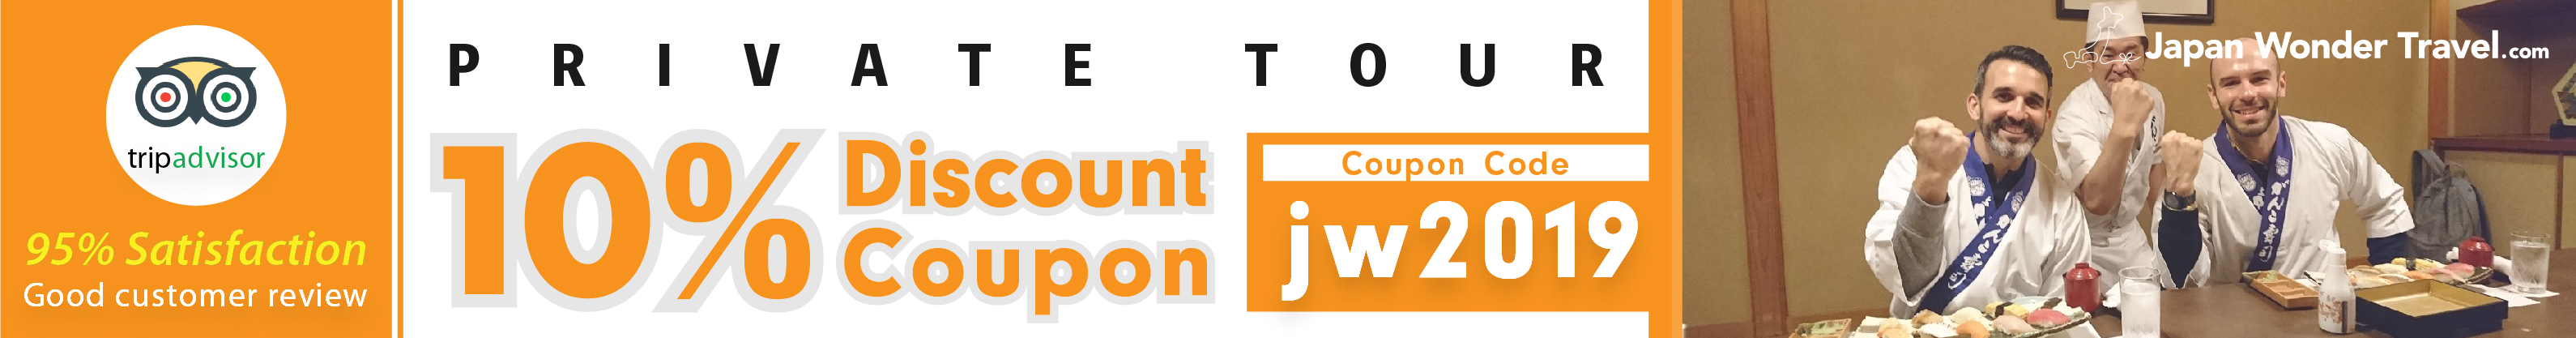 Japan Wonder Travel Discount Coupon